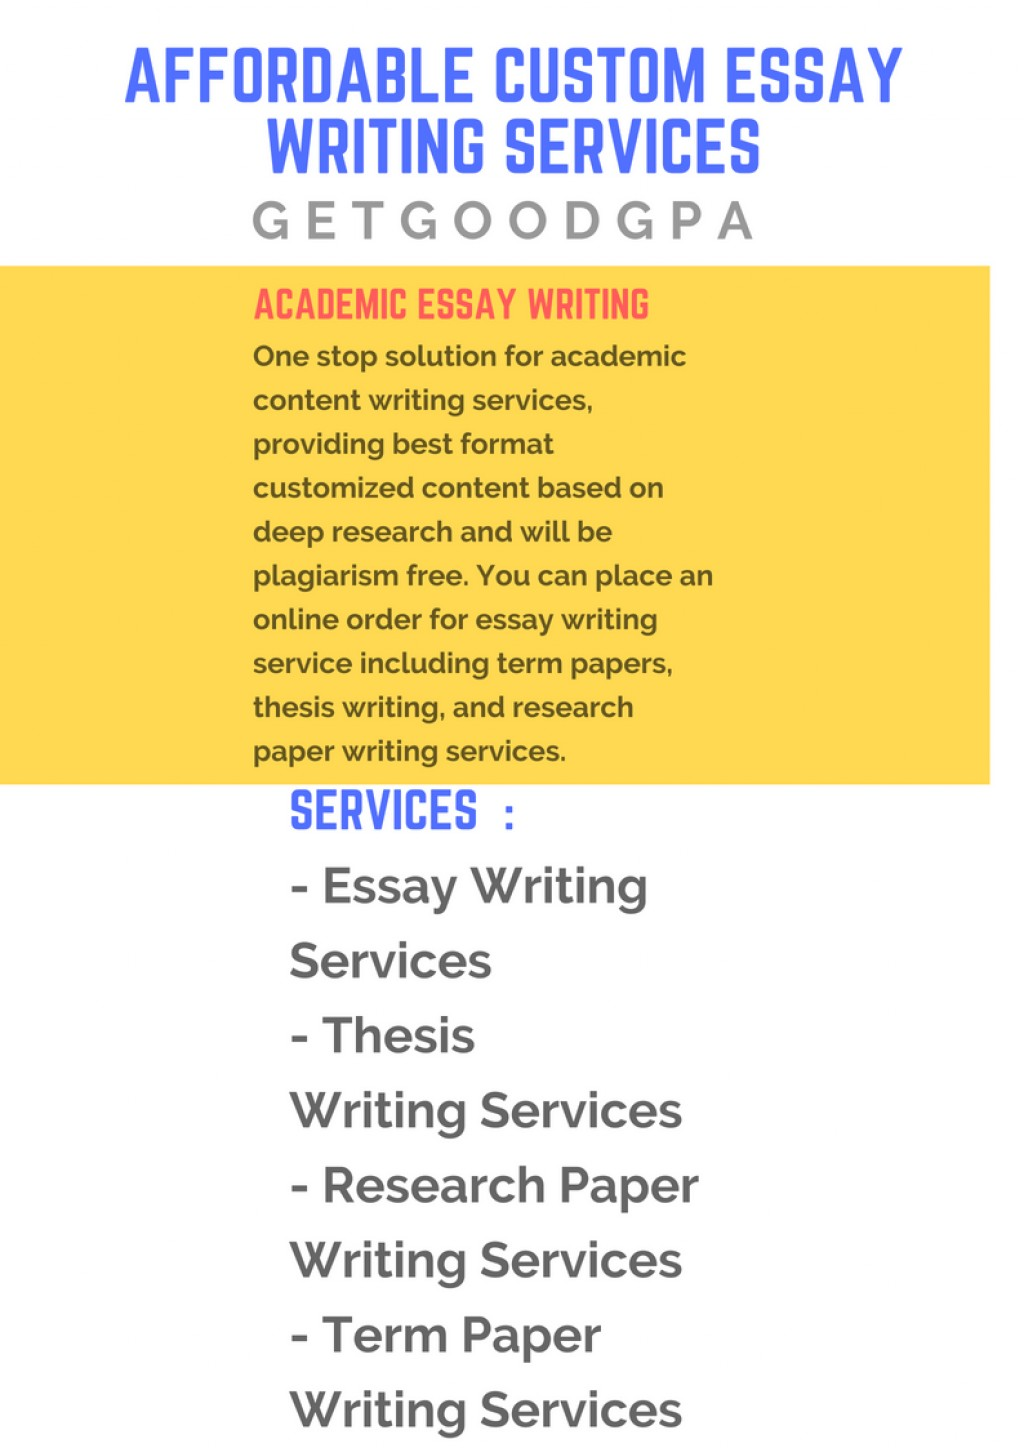 018 Customized Research Paper Affordable Custom Essay Writing Awesome Large